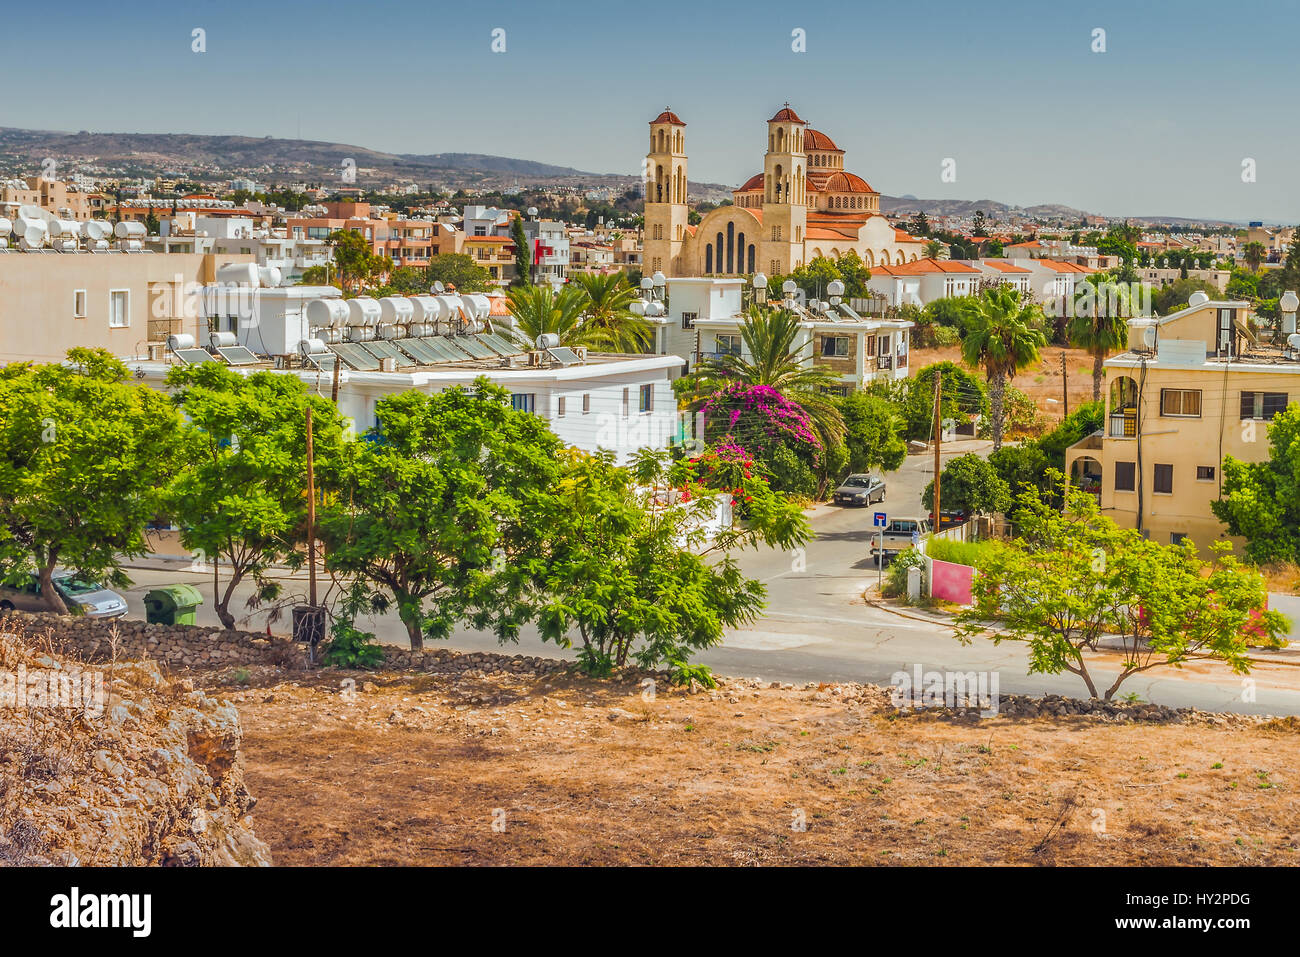 View of the town of Paphos in Cyprus.  Paphos is known as the center of ancient history and culture of the island. - Stock Image